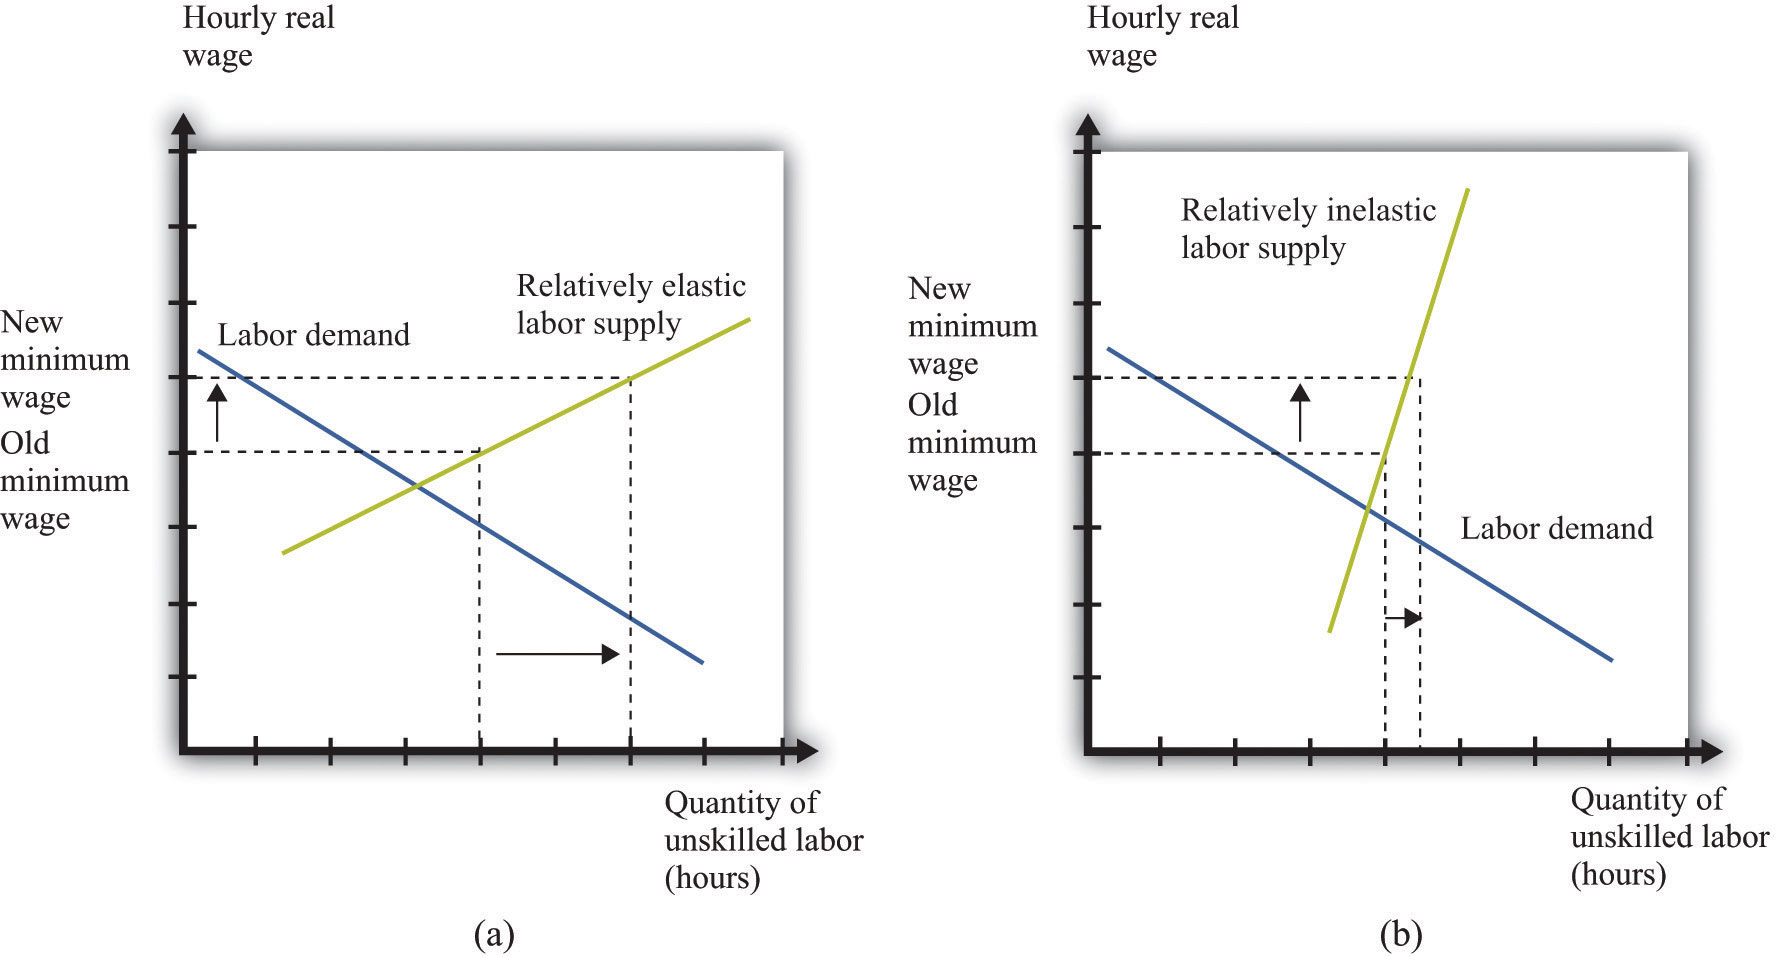 raising the wage floor if the labor supply is relatively elastic a a change in the minimum wage has a big effect on unemployment while if the labor supply is relatively